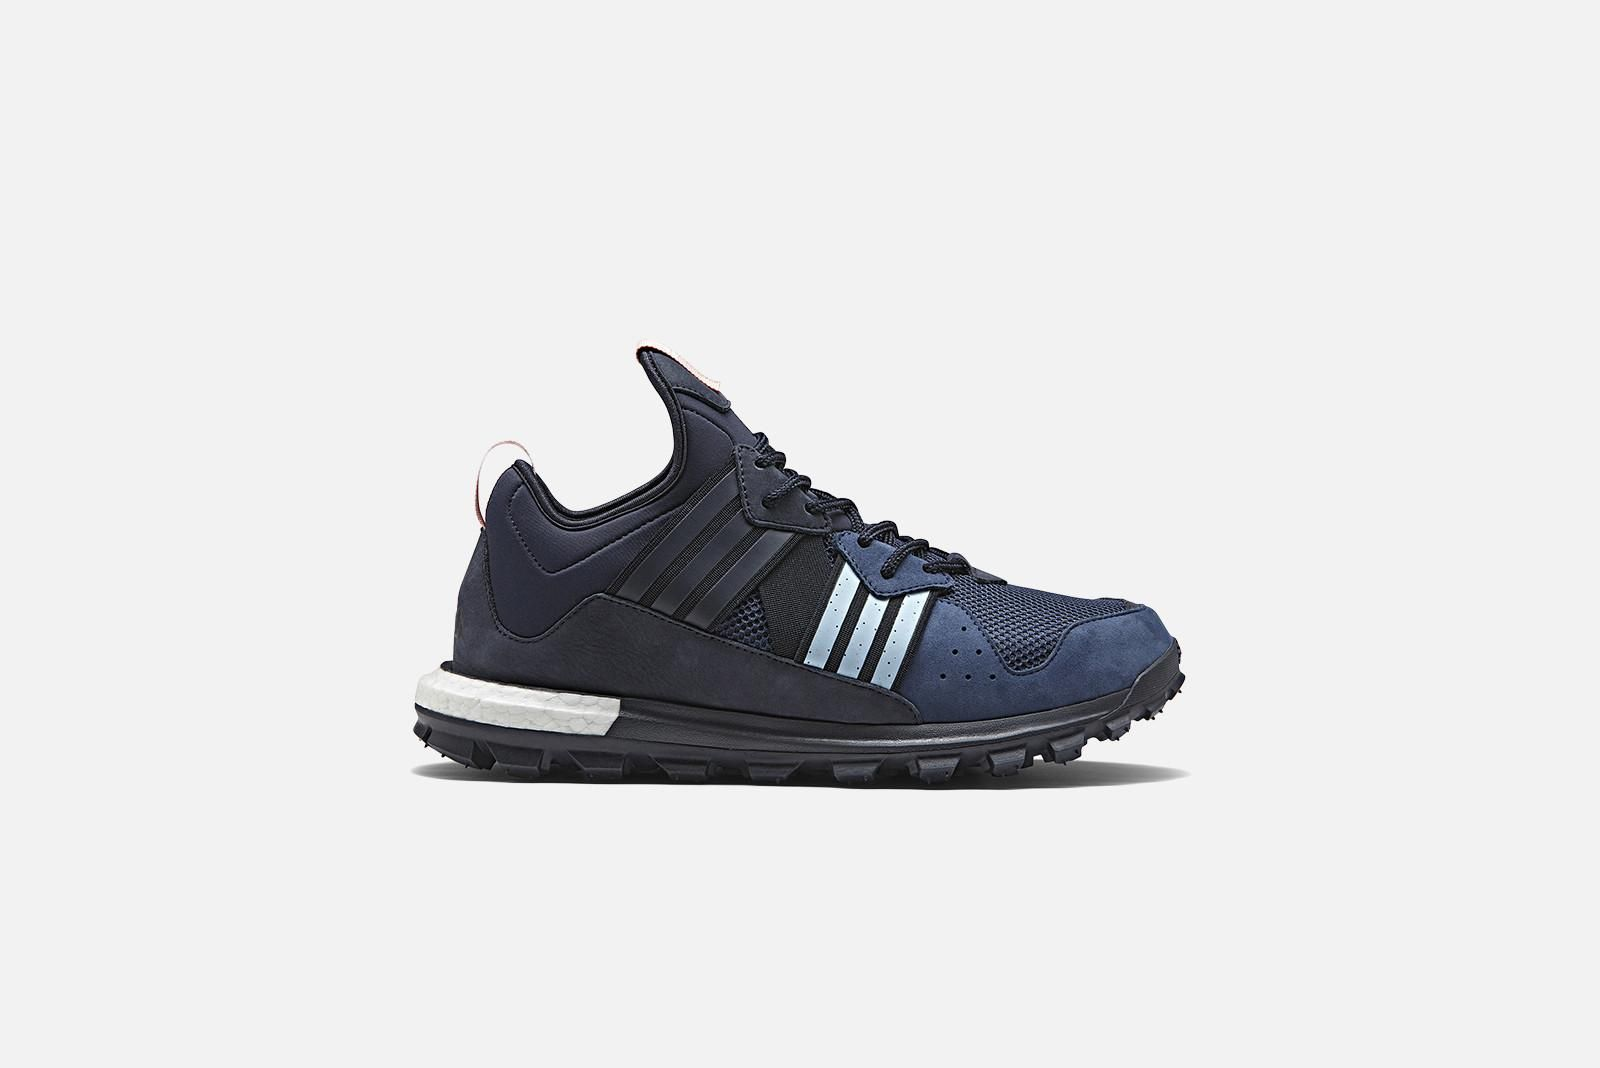 Kith x adidas Consortium Response Trail BOOST - $160.00